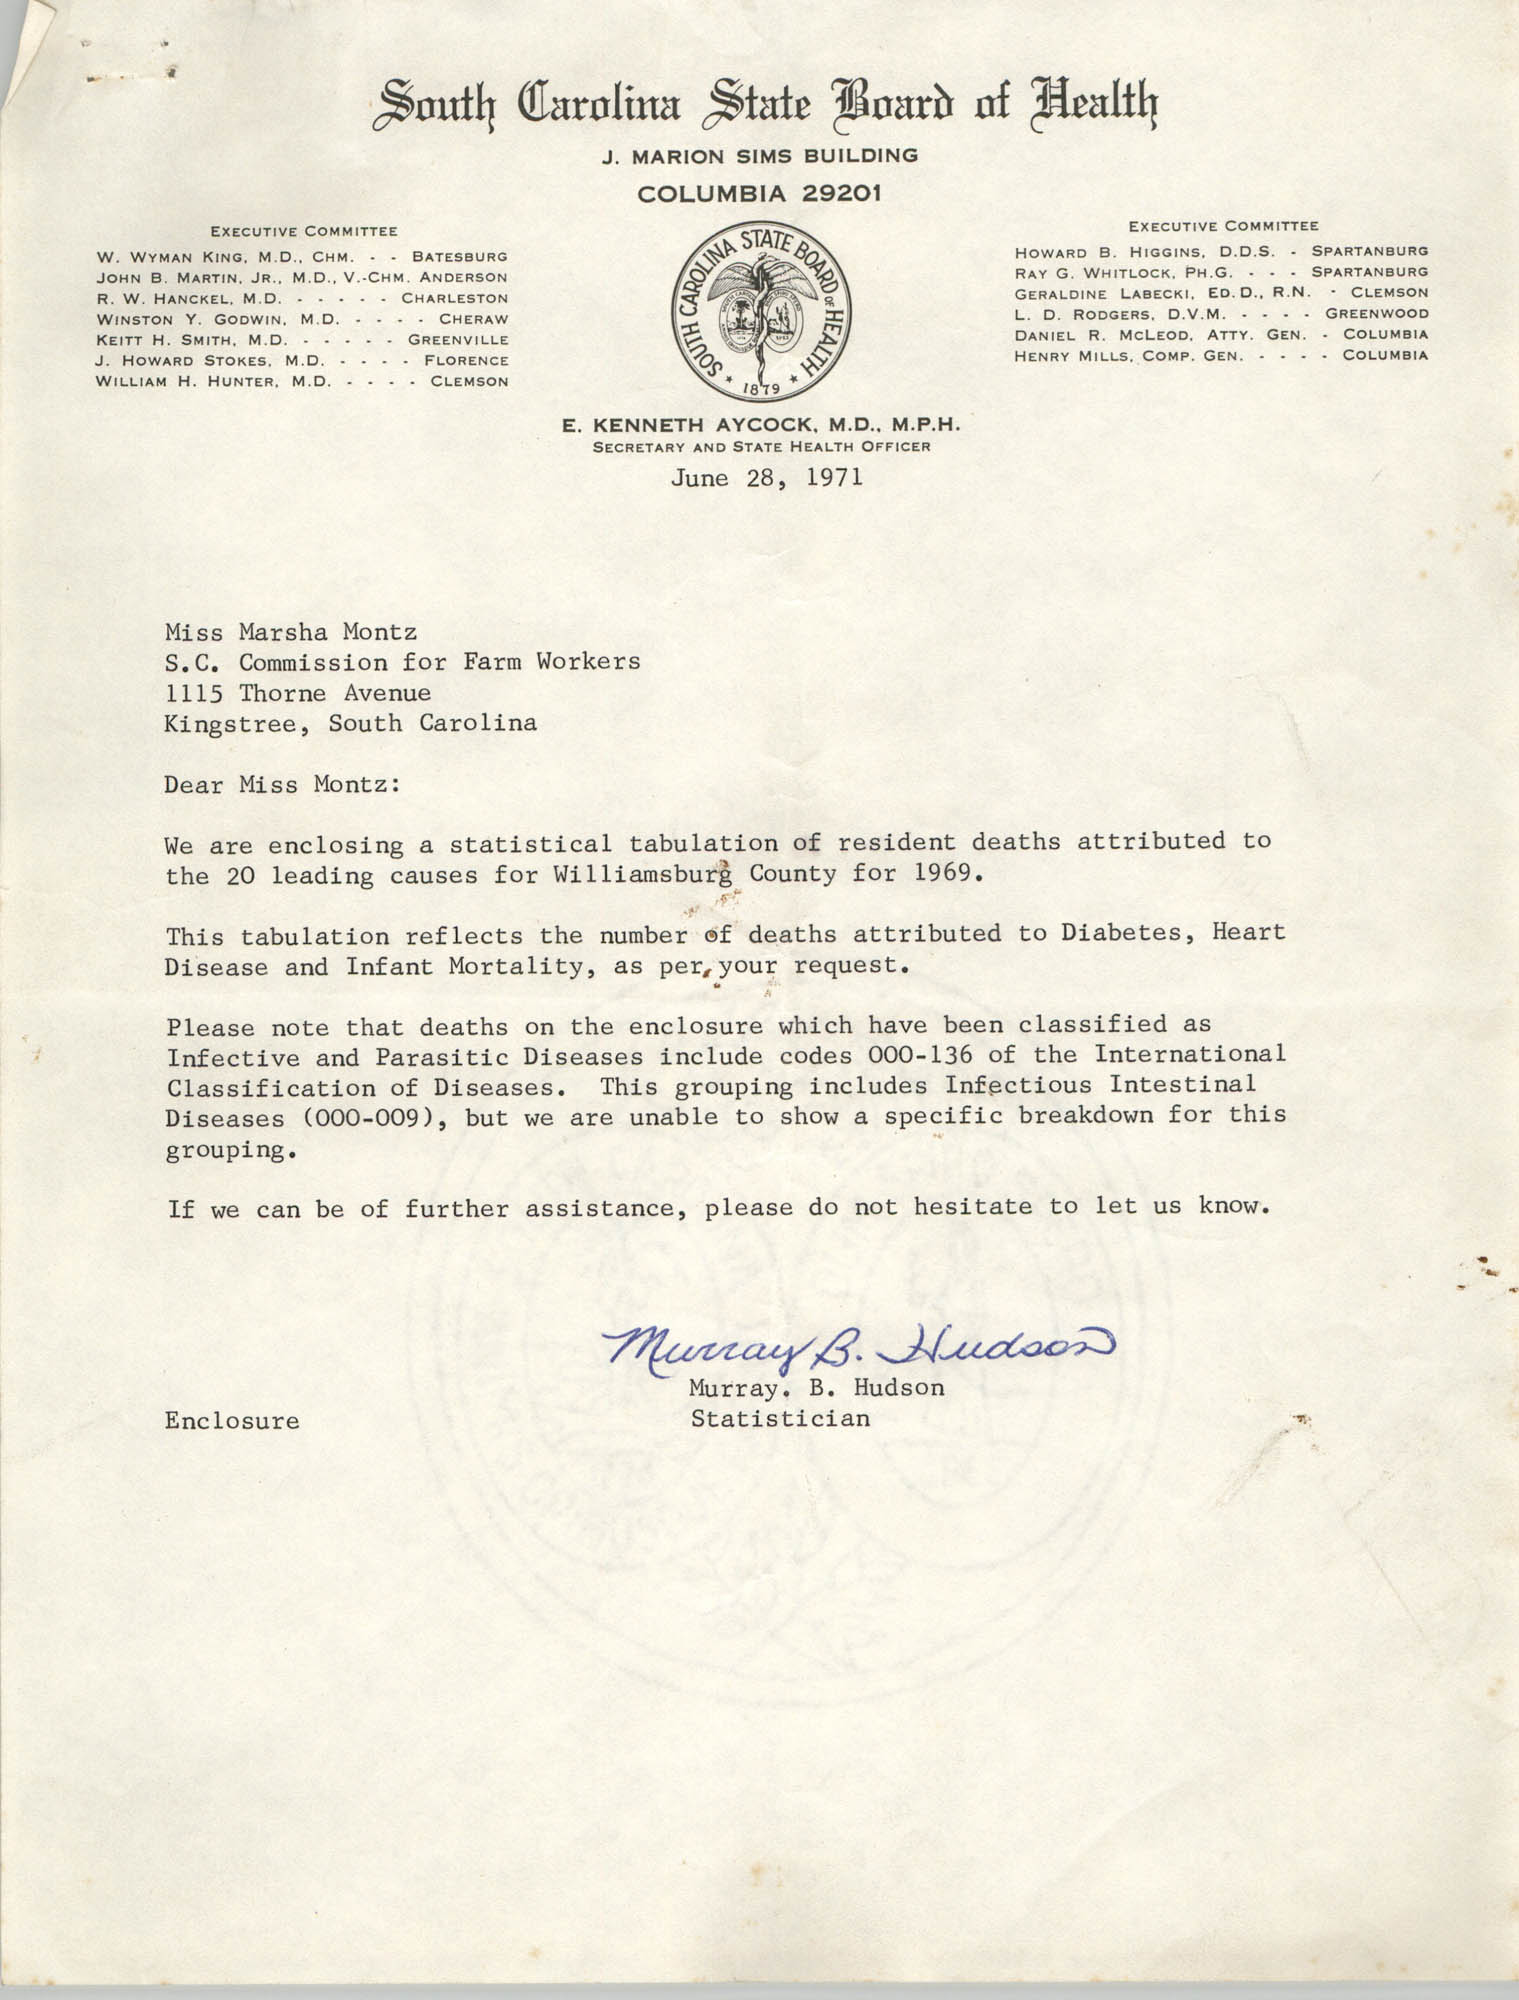 Letter from Murray B. Hudson to Marsha Montz, June 28, 1971